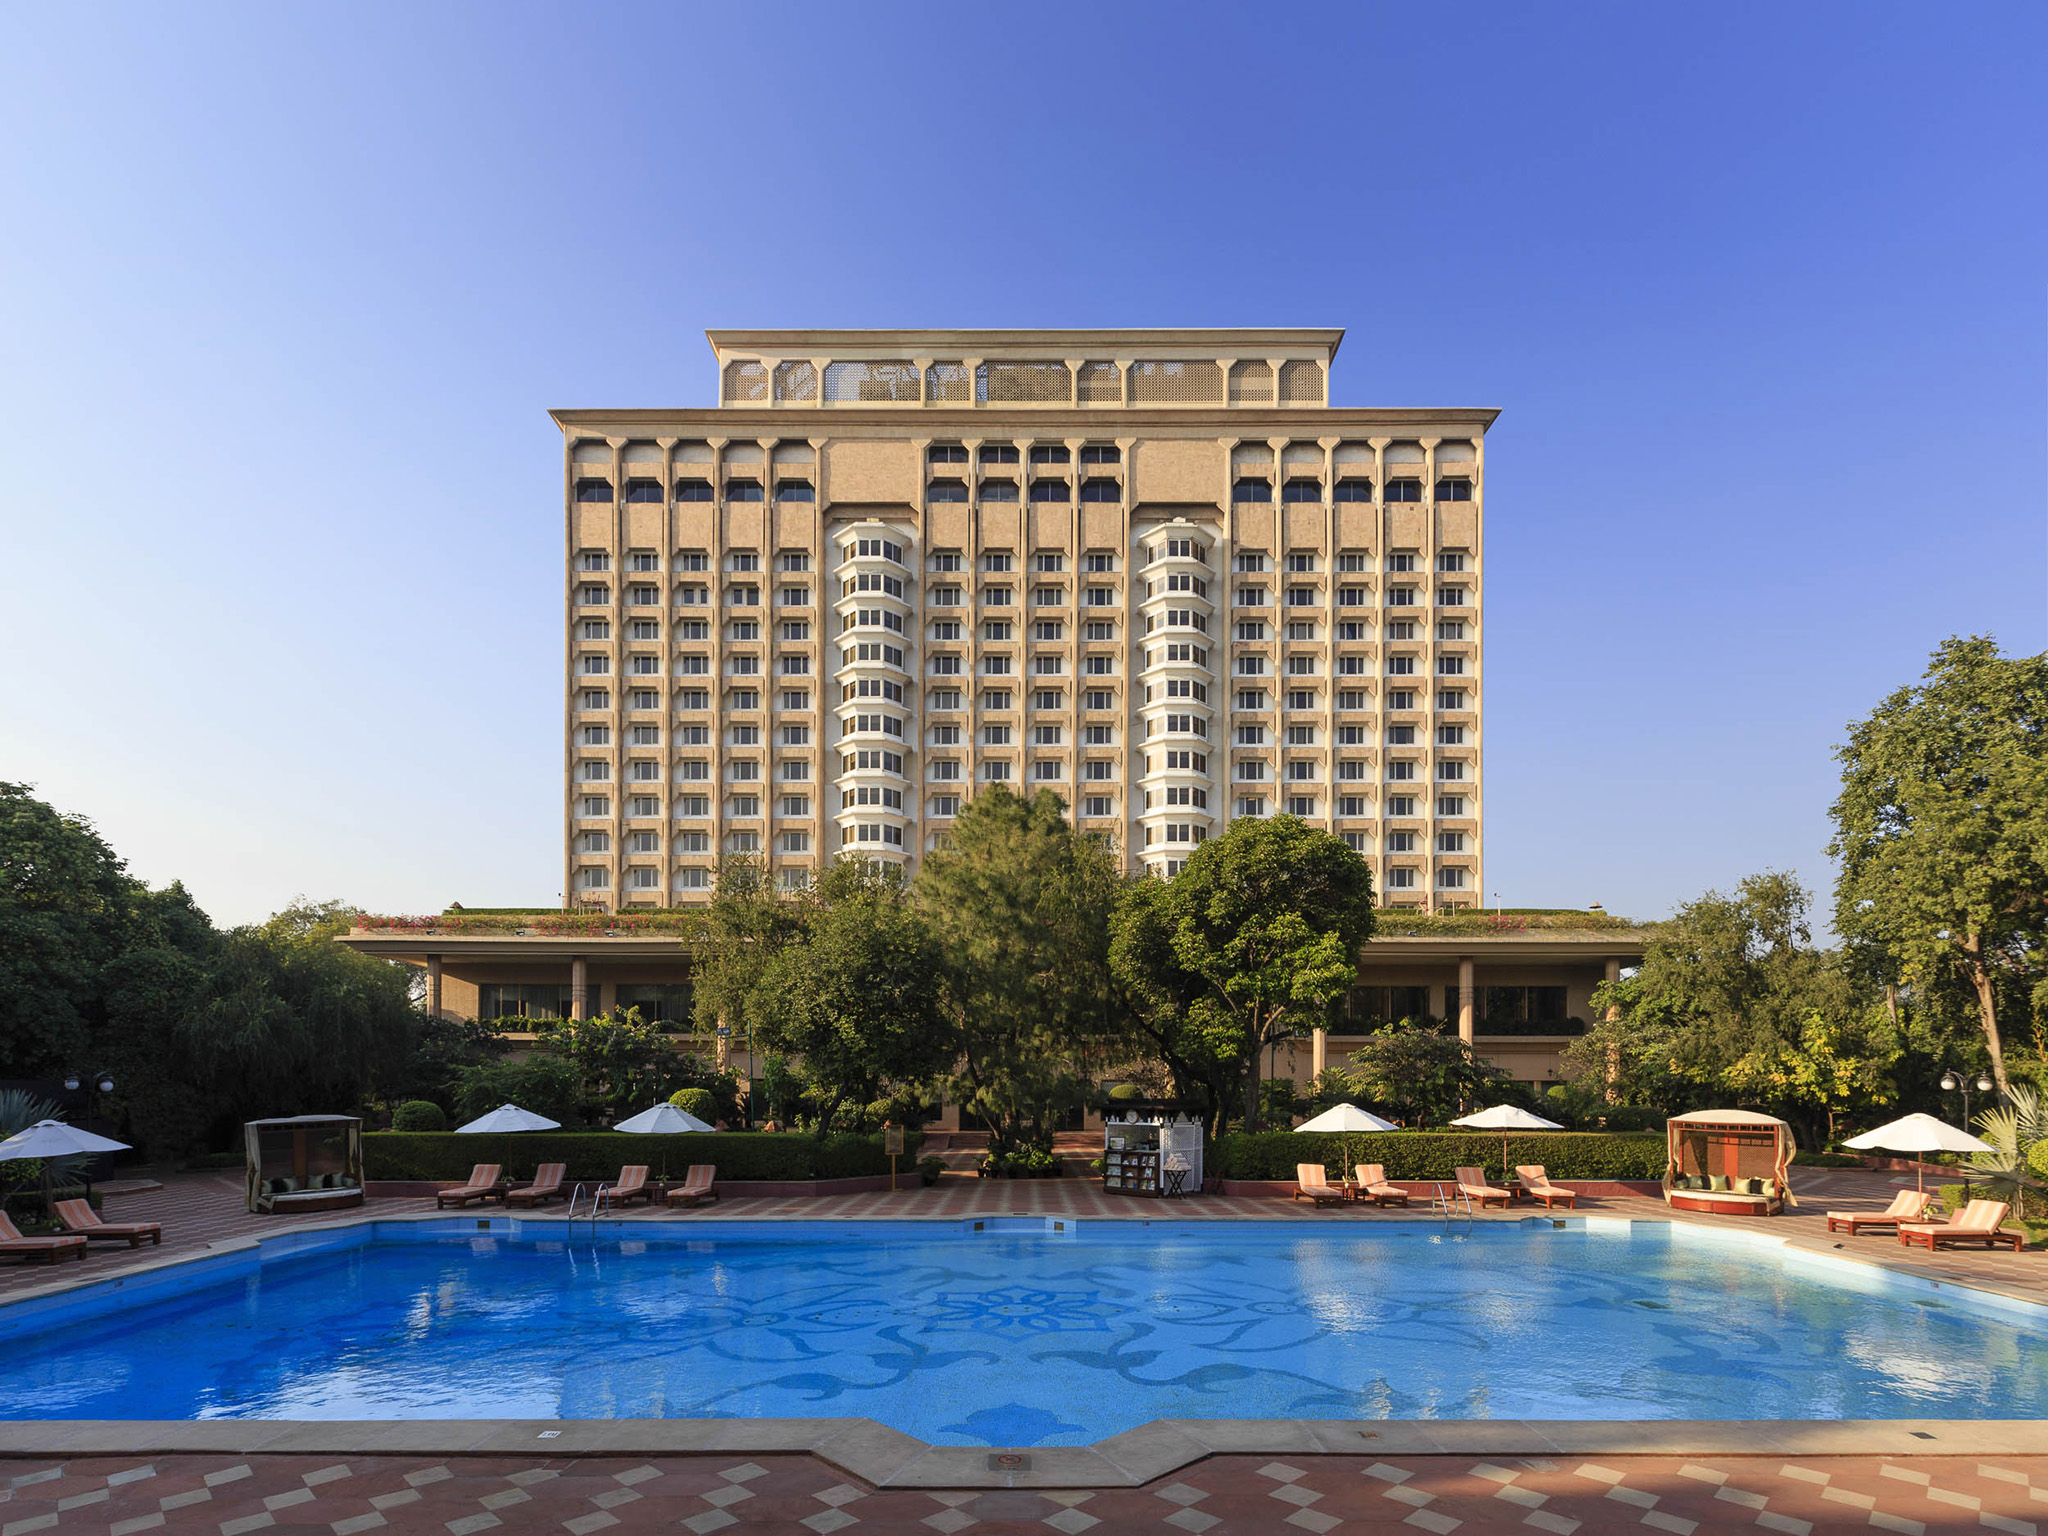 The taj mahal hotel 5 star luxury hotel in new delhi for Contact hotel